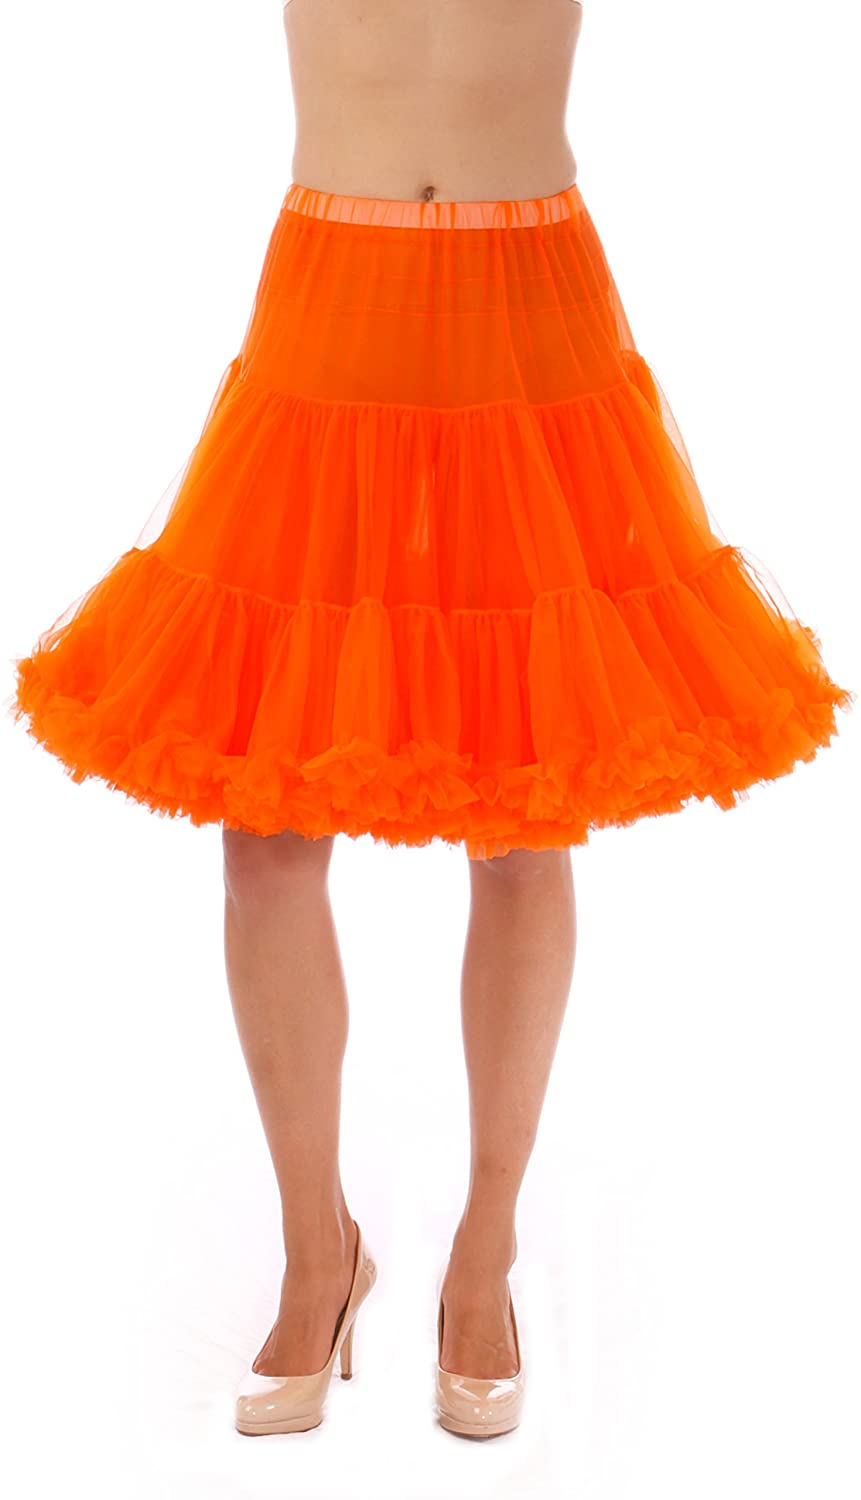 Malco Modes Jennifer Luxury Vintage Knee-Length Child Pettiskirt, Tutu for Costumes or Everyday Clothes